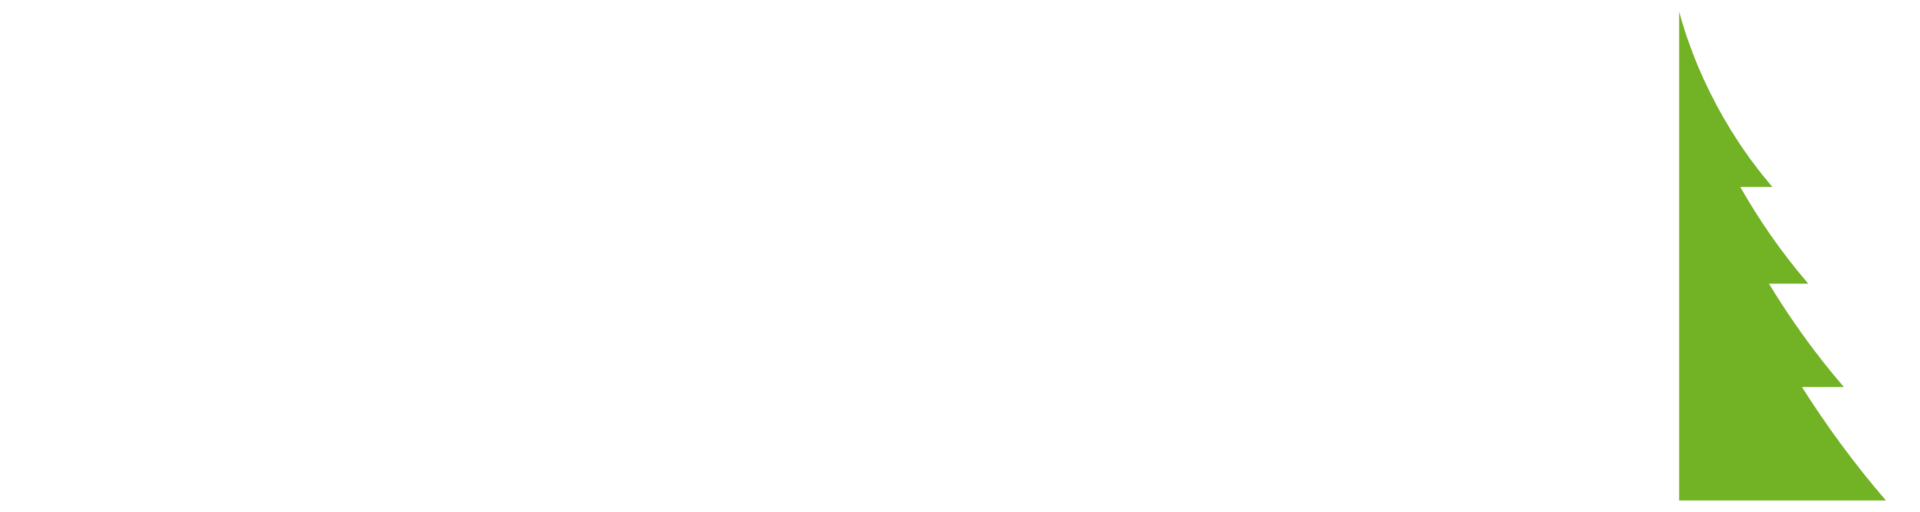 Dein-Christbaum.de